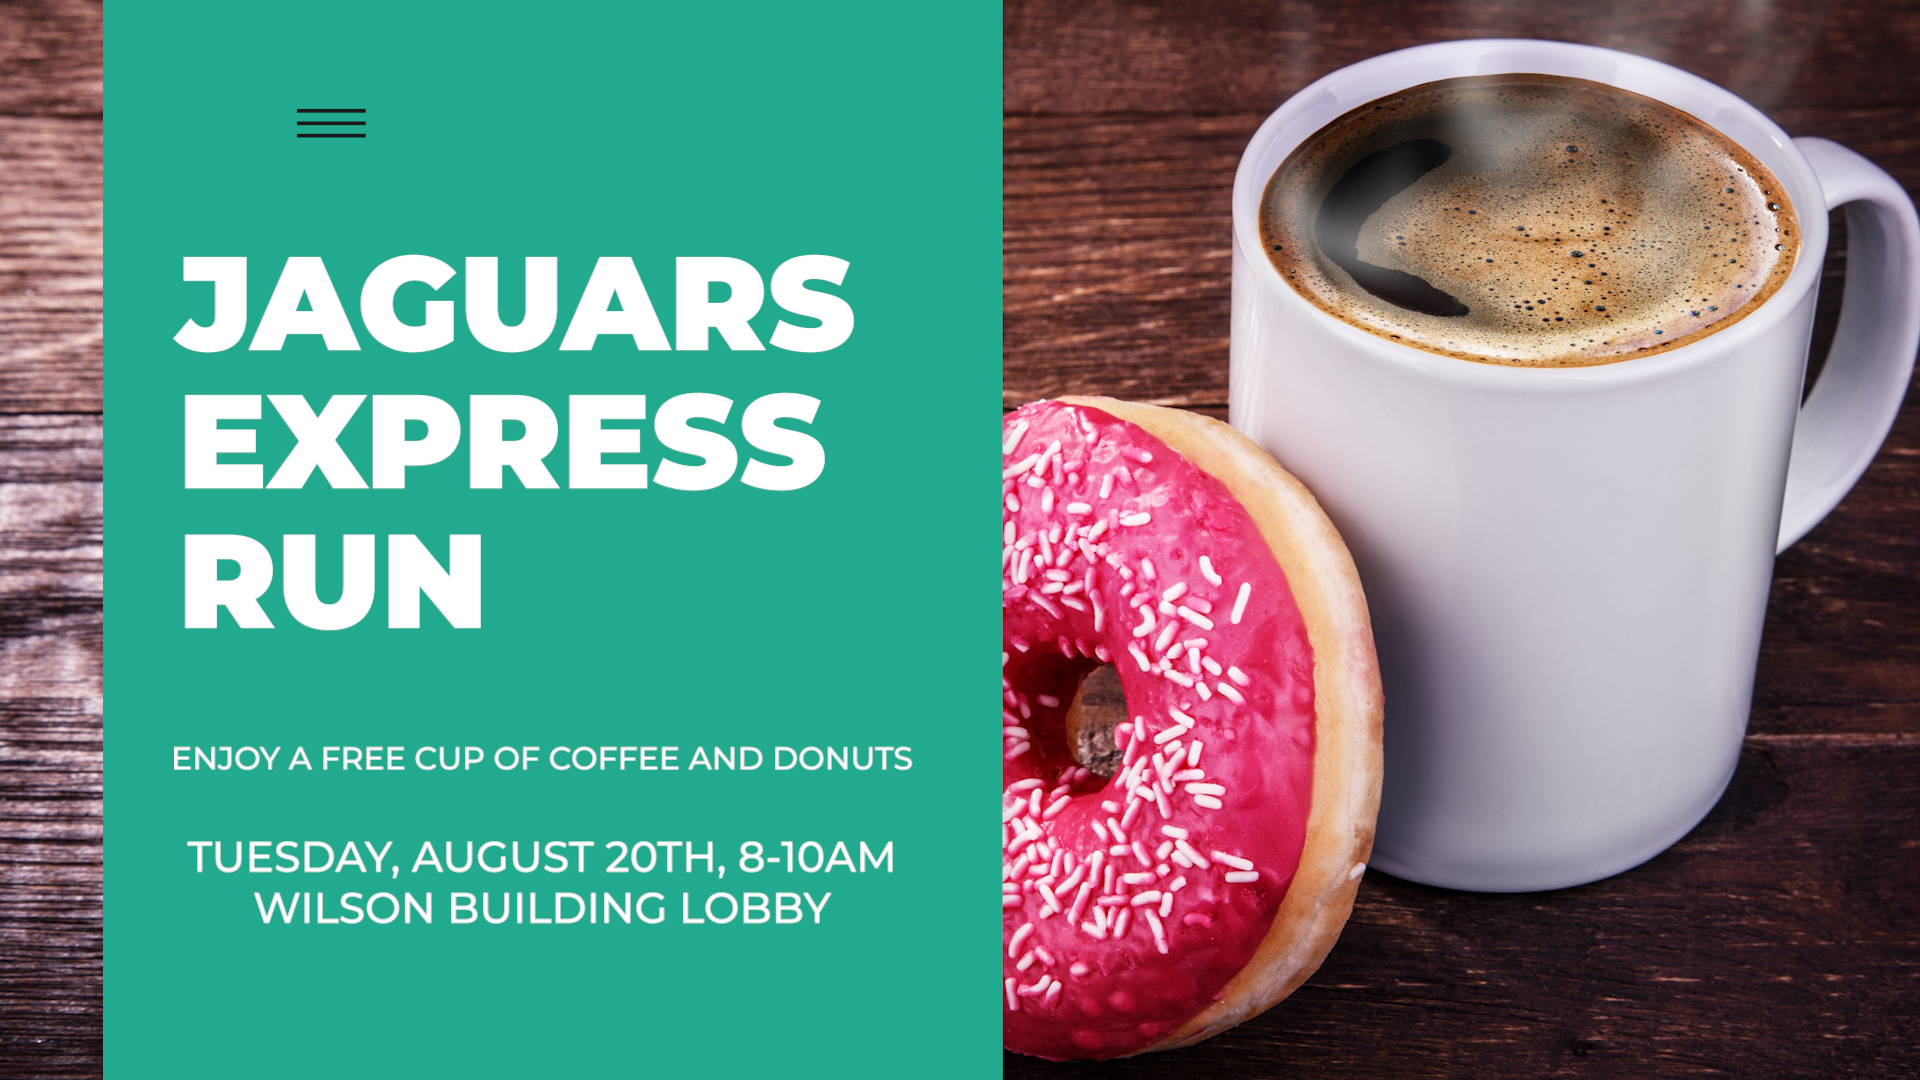 Jaguars Expresso Run. Enjoy a free cup of coffee and donuts. Tuesday, August 20th, 8-10AM, Wilson Building Front Lobby